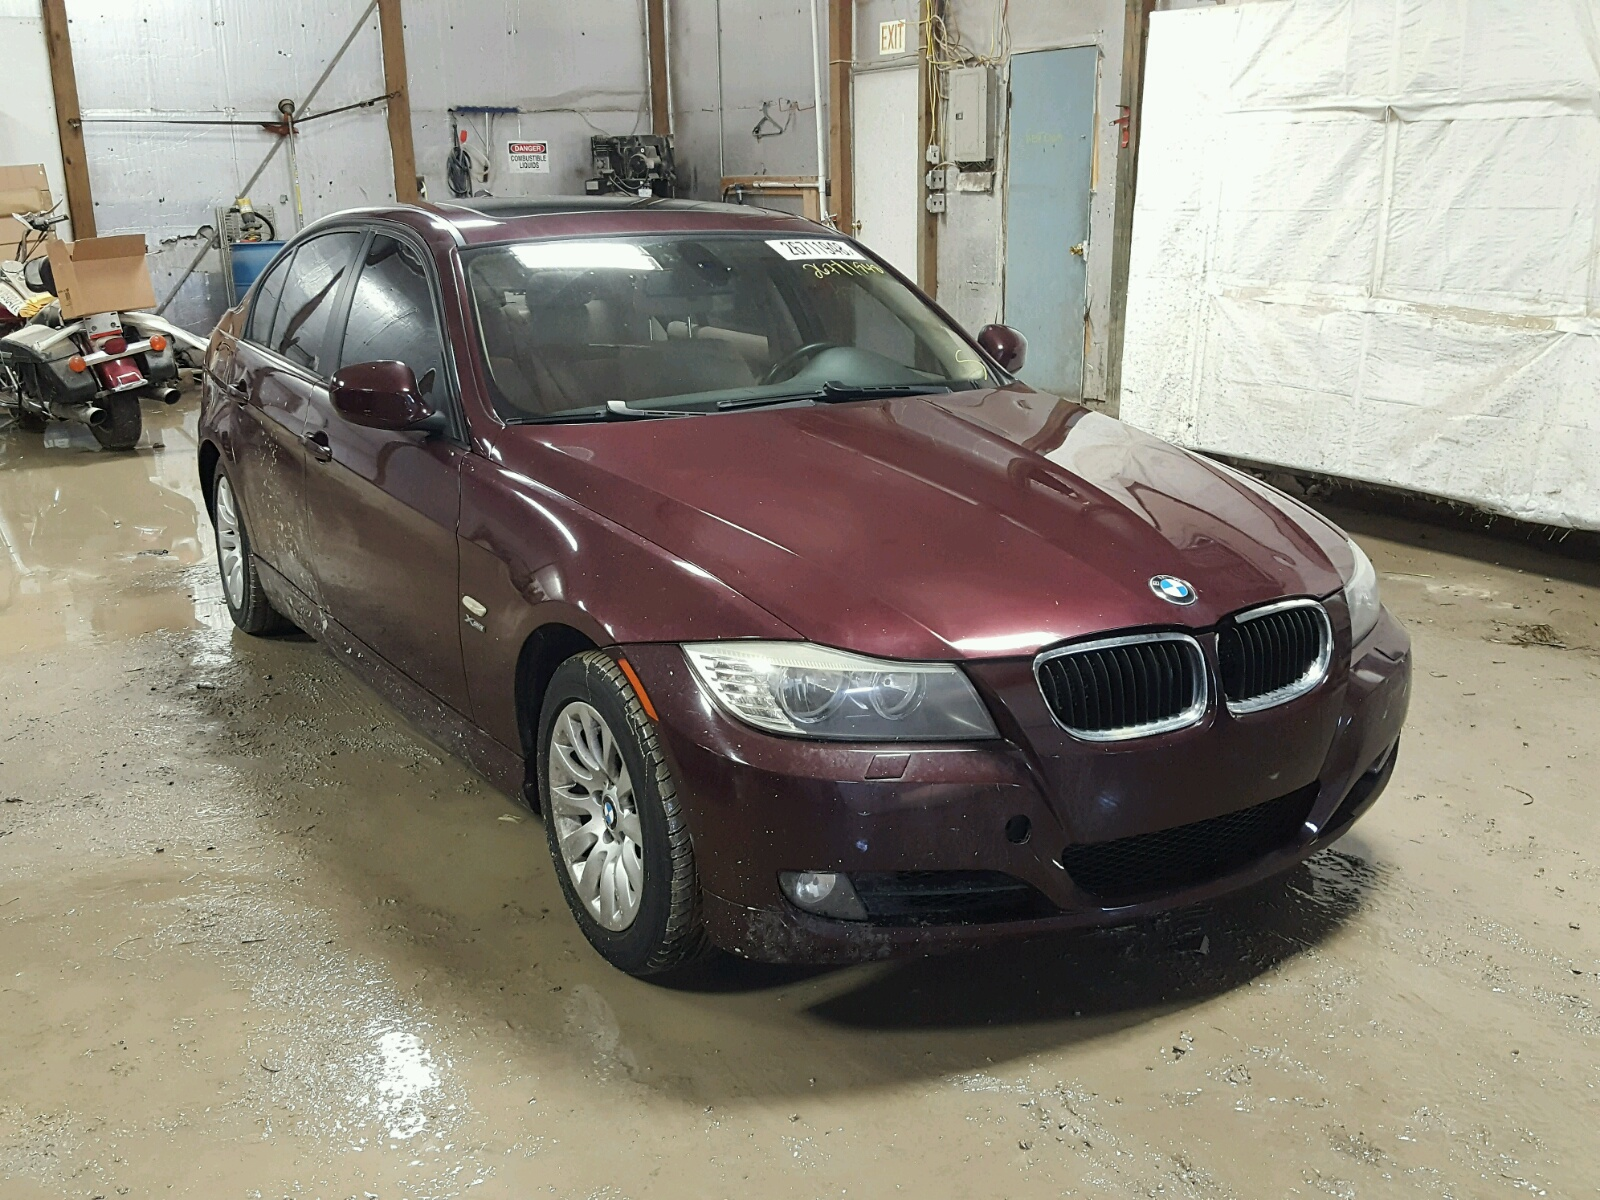 Auto Auction Ended On VIN WBAGNDS BMW LI In TX - 2009 bmw 745li